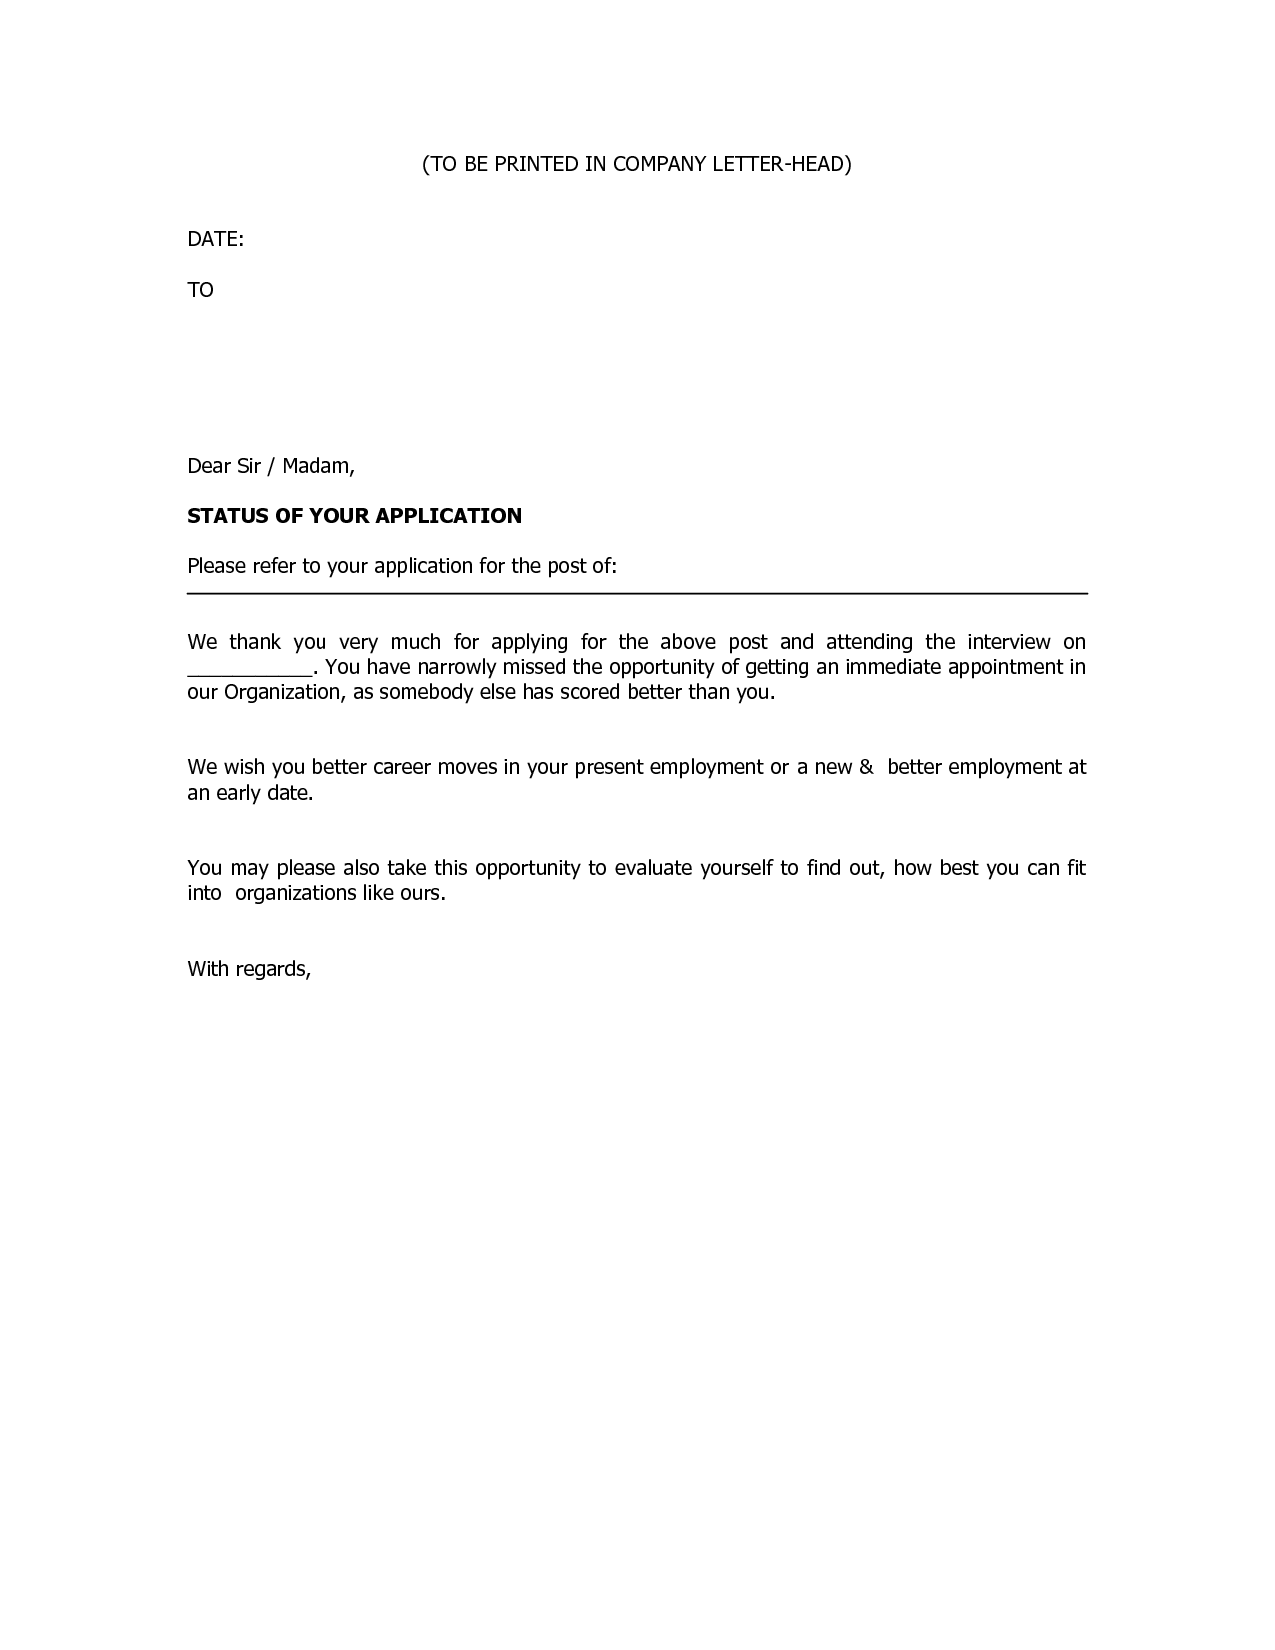 Sample Job Rejection Letter Rejection Letter For Job Applicants Job